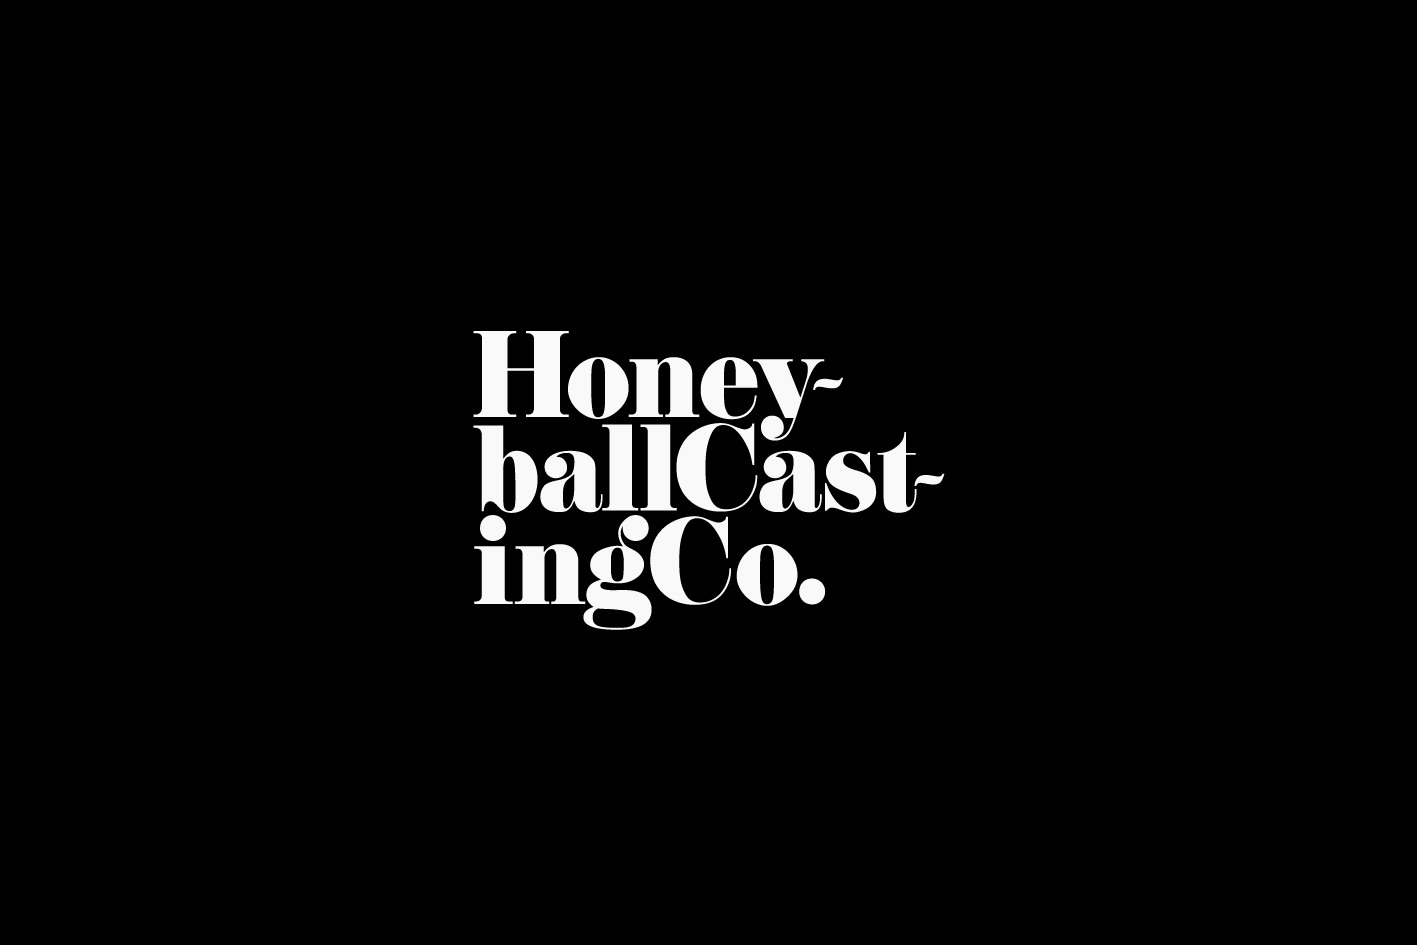 Honeyball Casting Co. identity logo